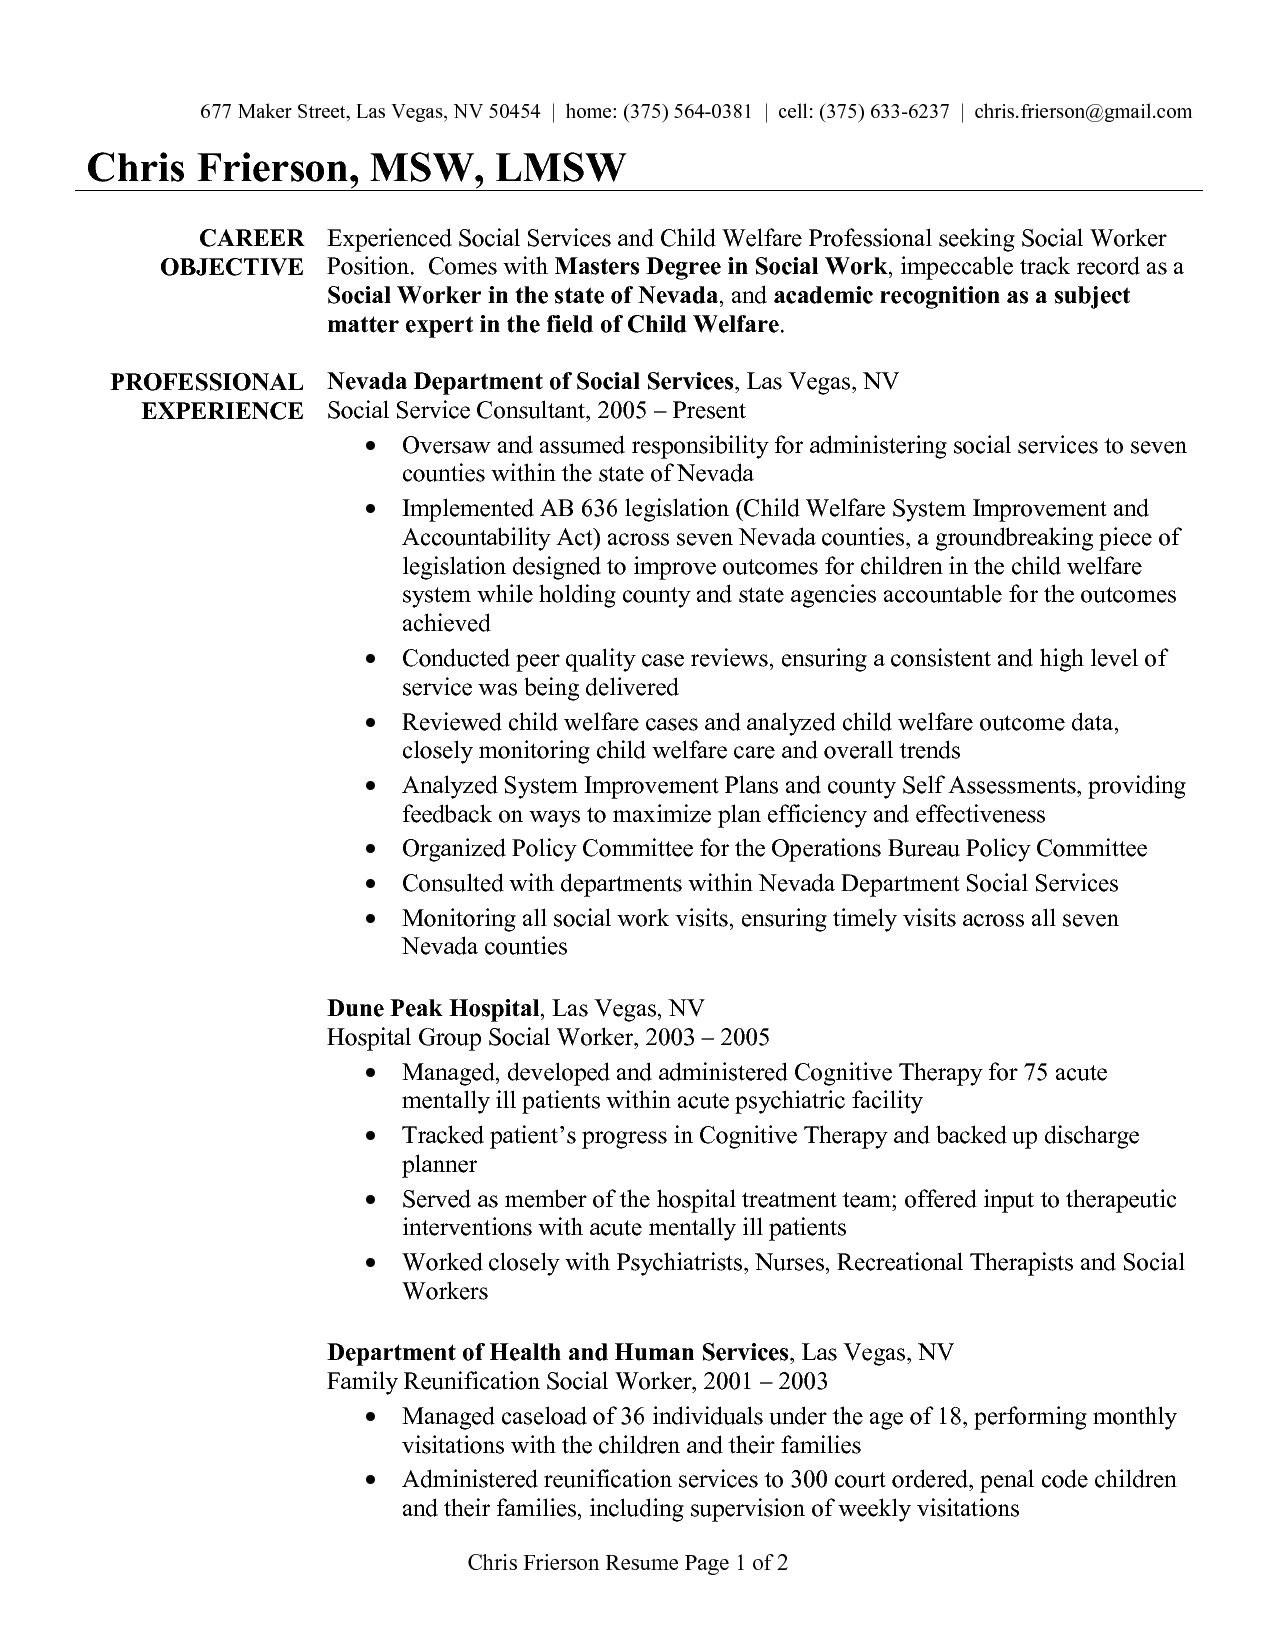 Exceptional Social Work Resume Examples Worker Sample Projects Example Amp Services  Resumes